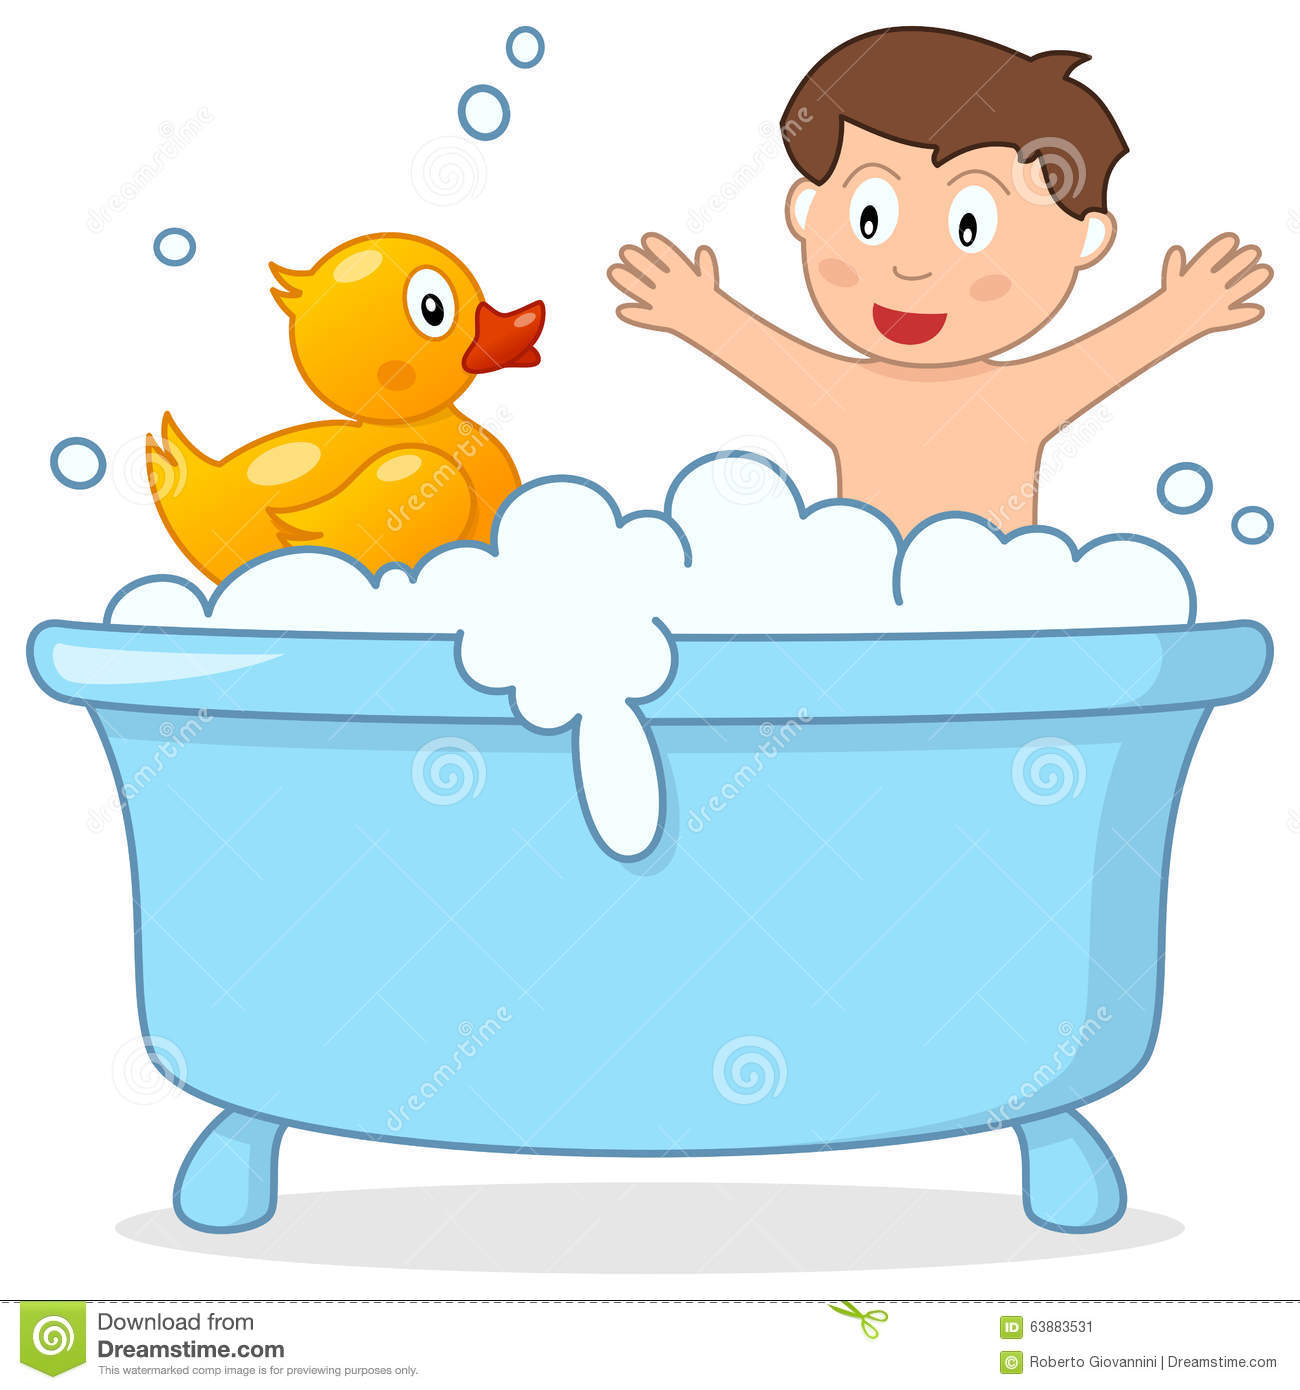 Taking a station . Bath clipart child